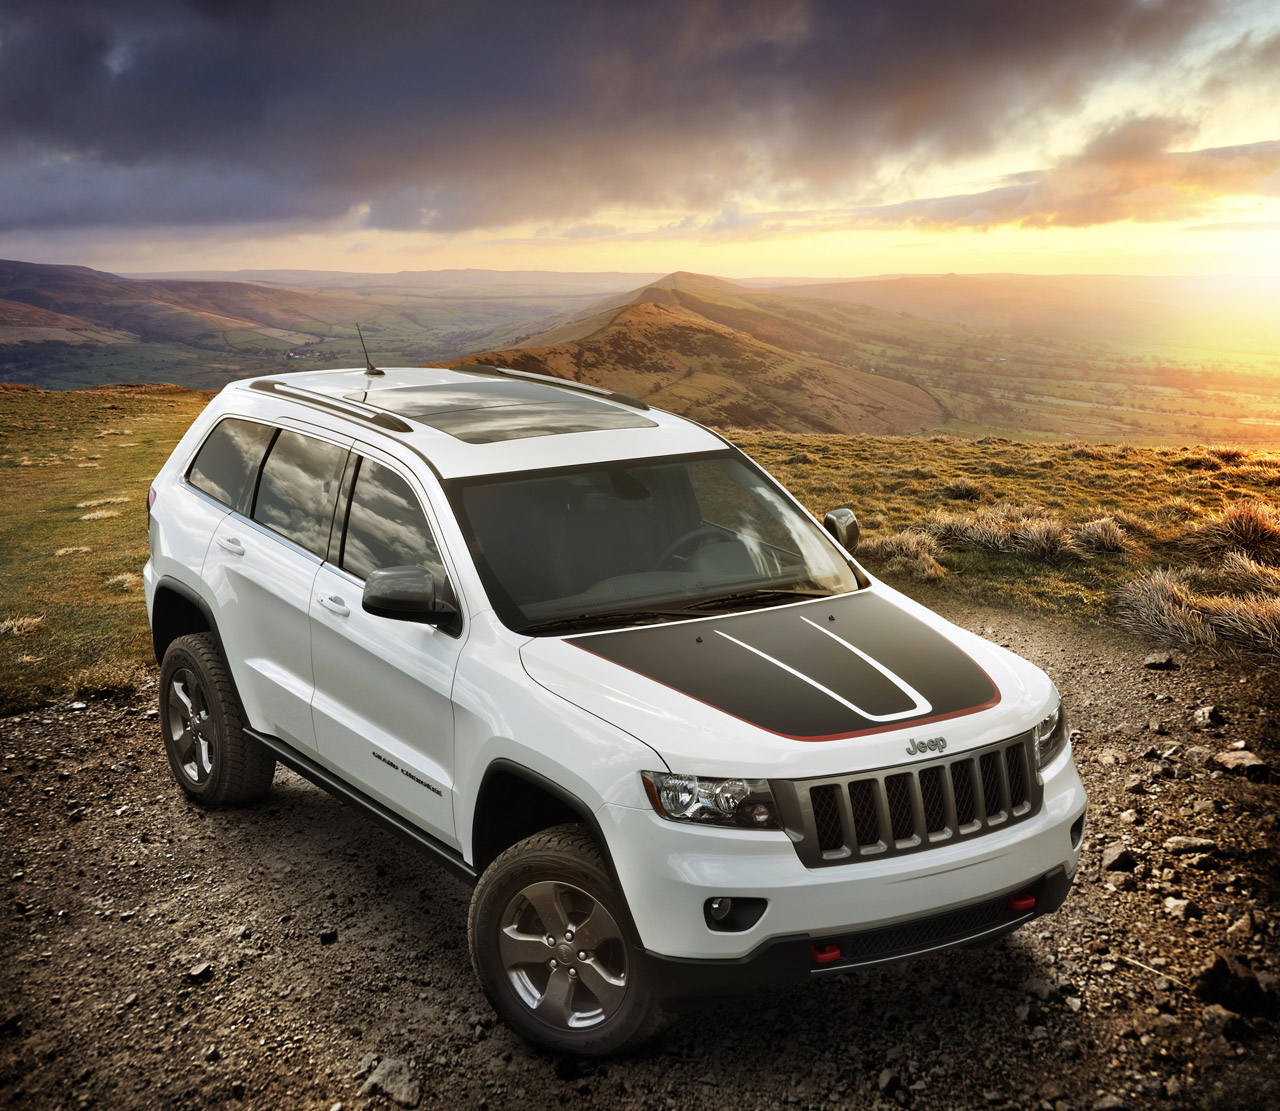 2013 jeep grand cherokee trailhawk and wrangler moab special edition announced autoblog. Black Bedroom Furniture Sets. Home Design Ideas